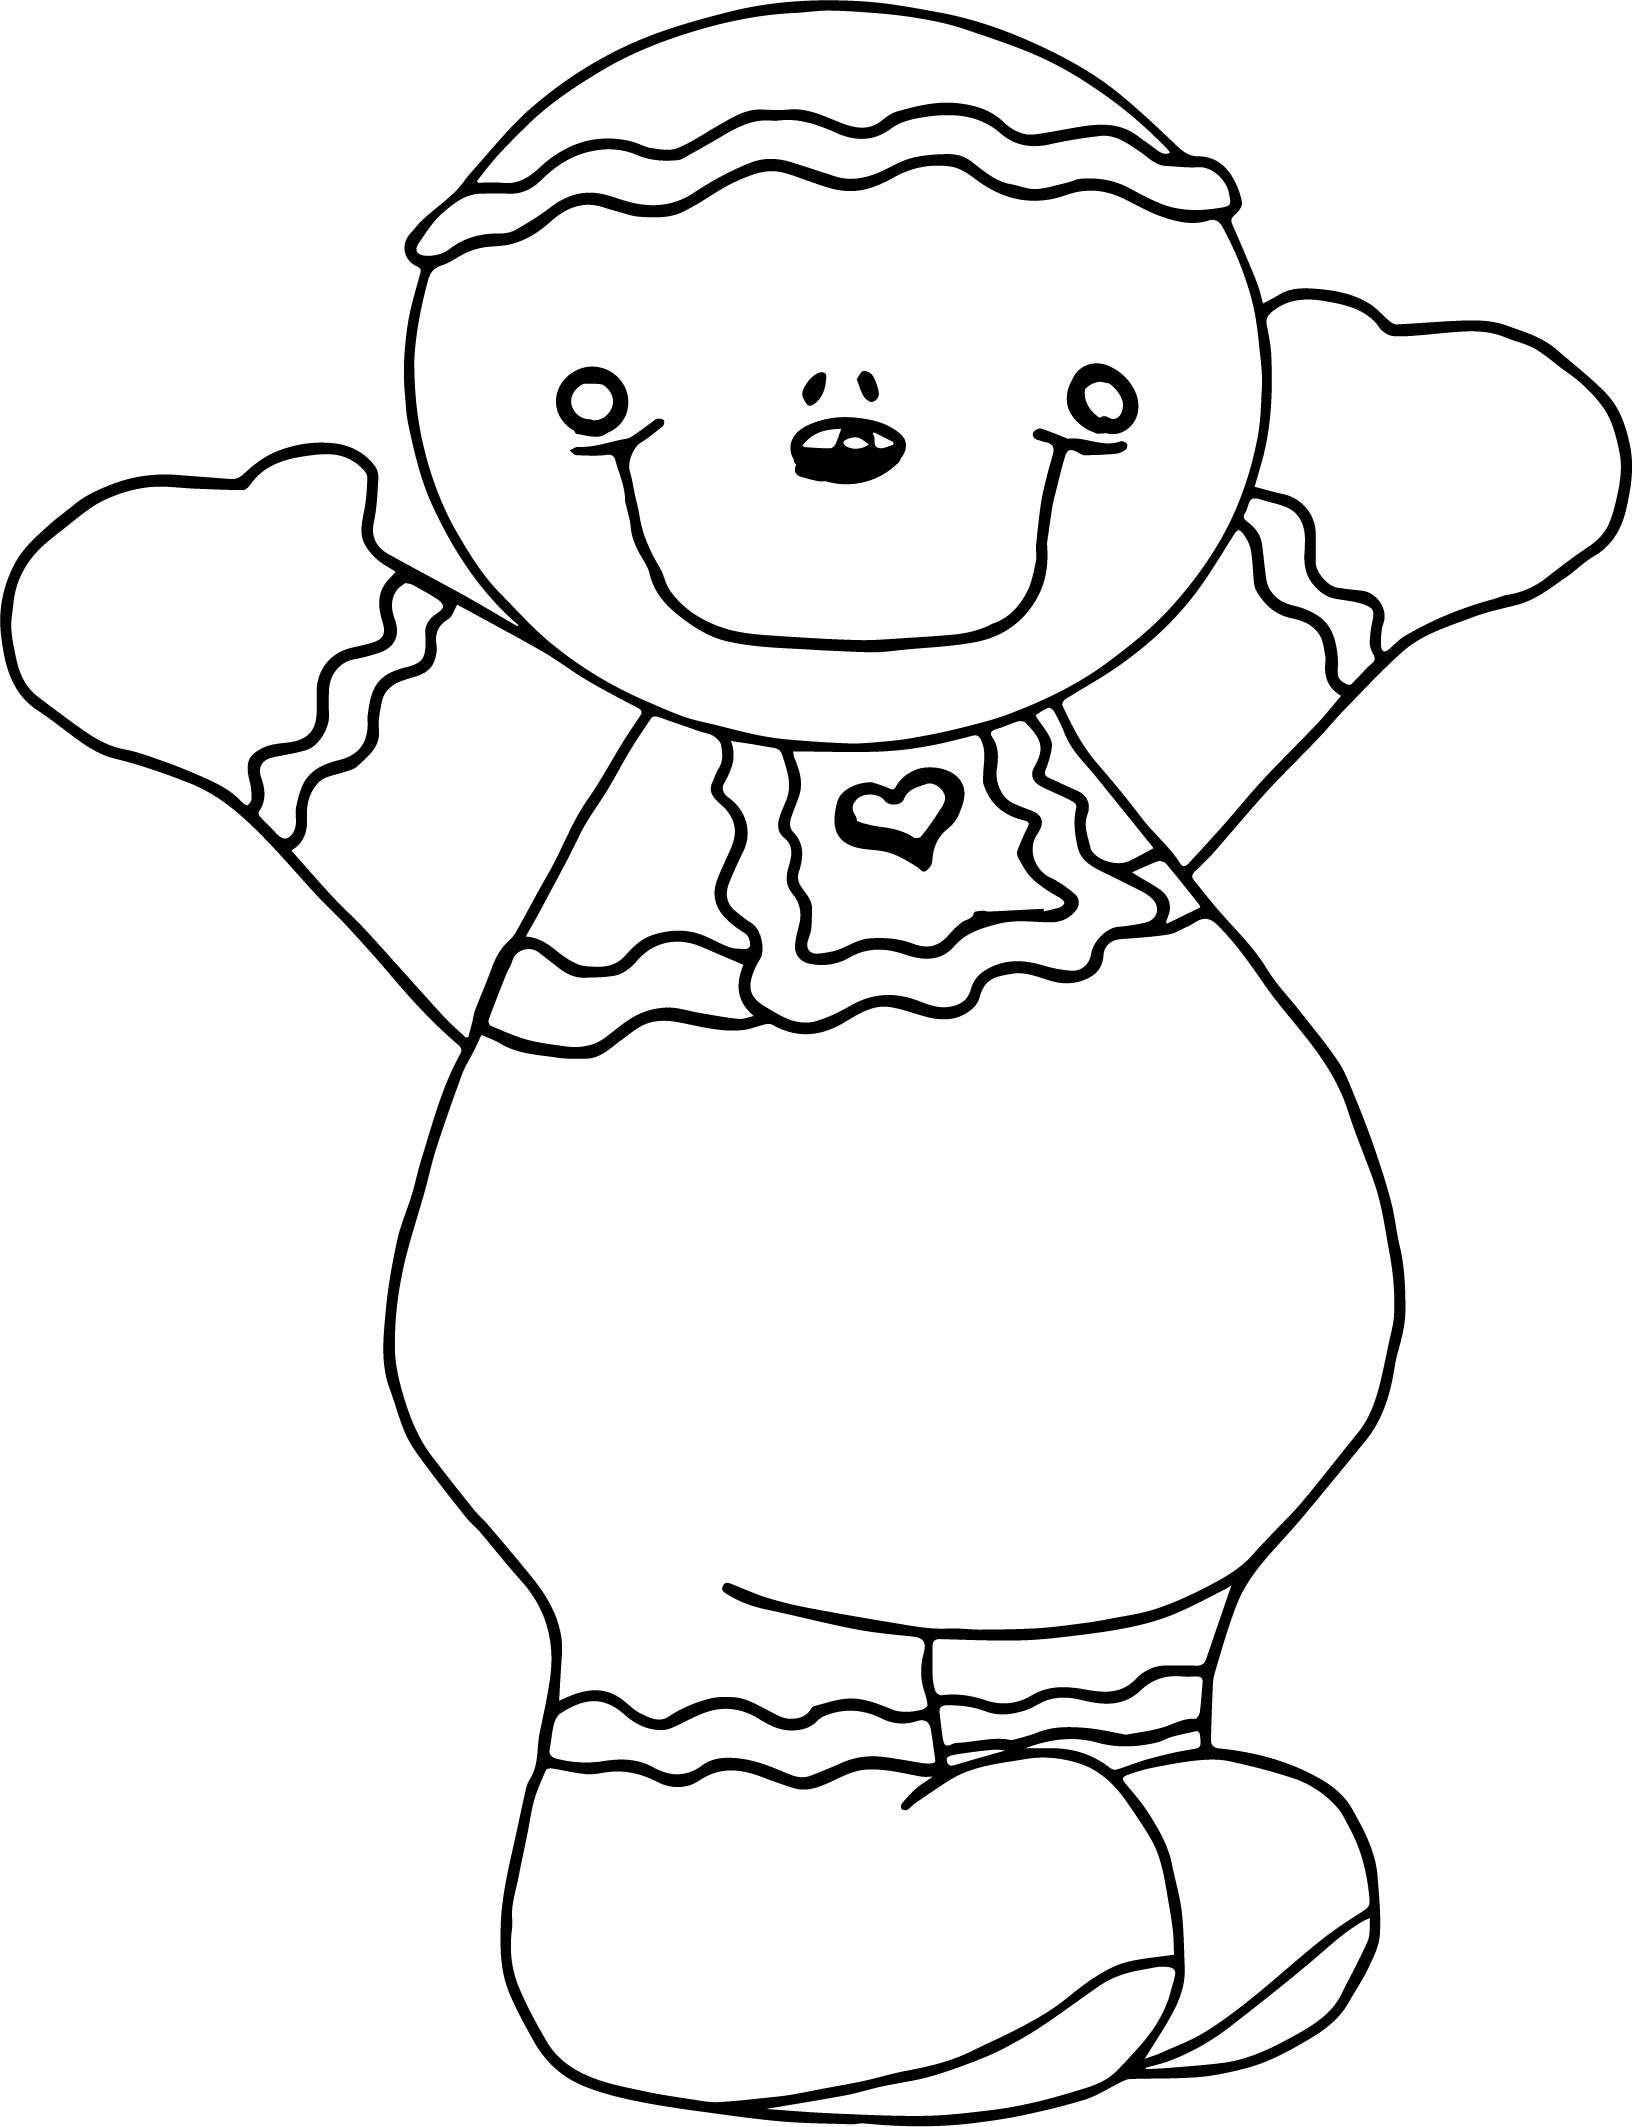 gingerbread bear coloring page wecoloringpage